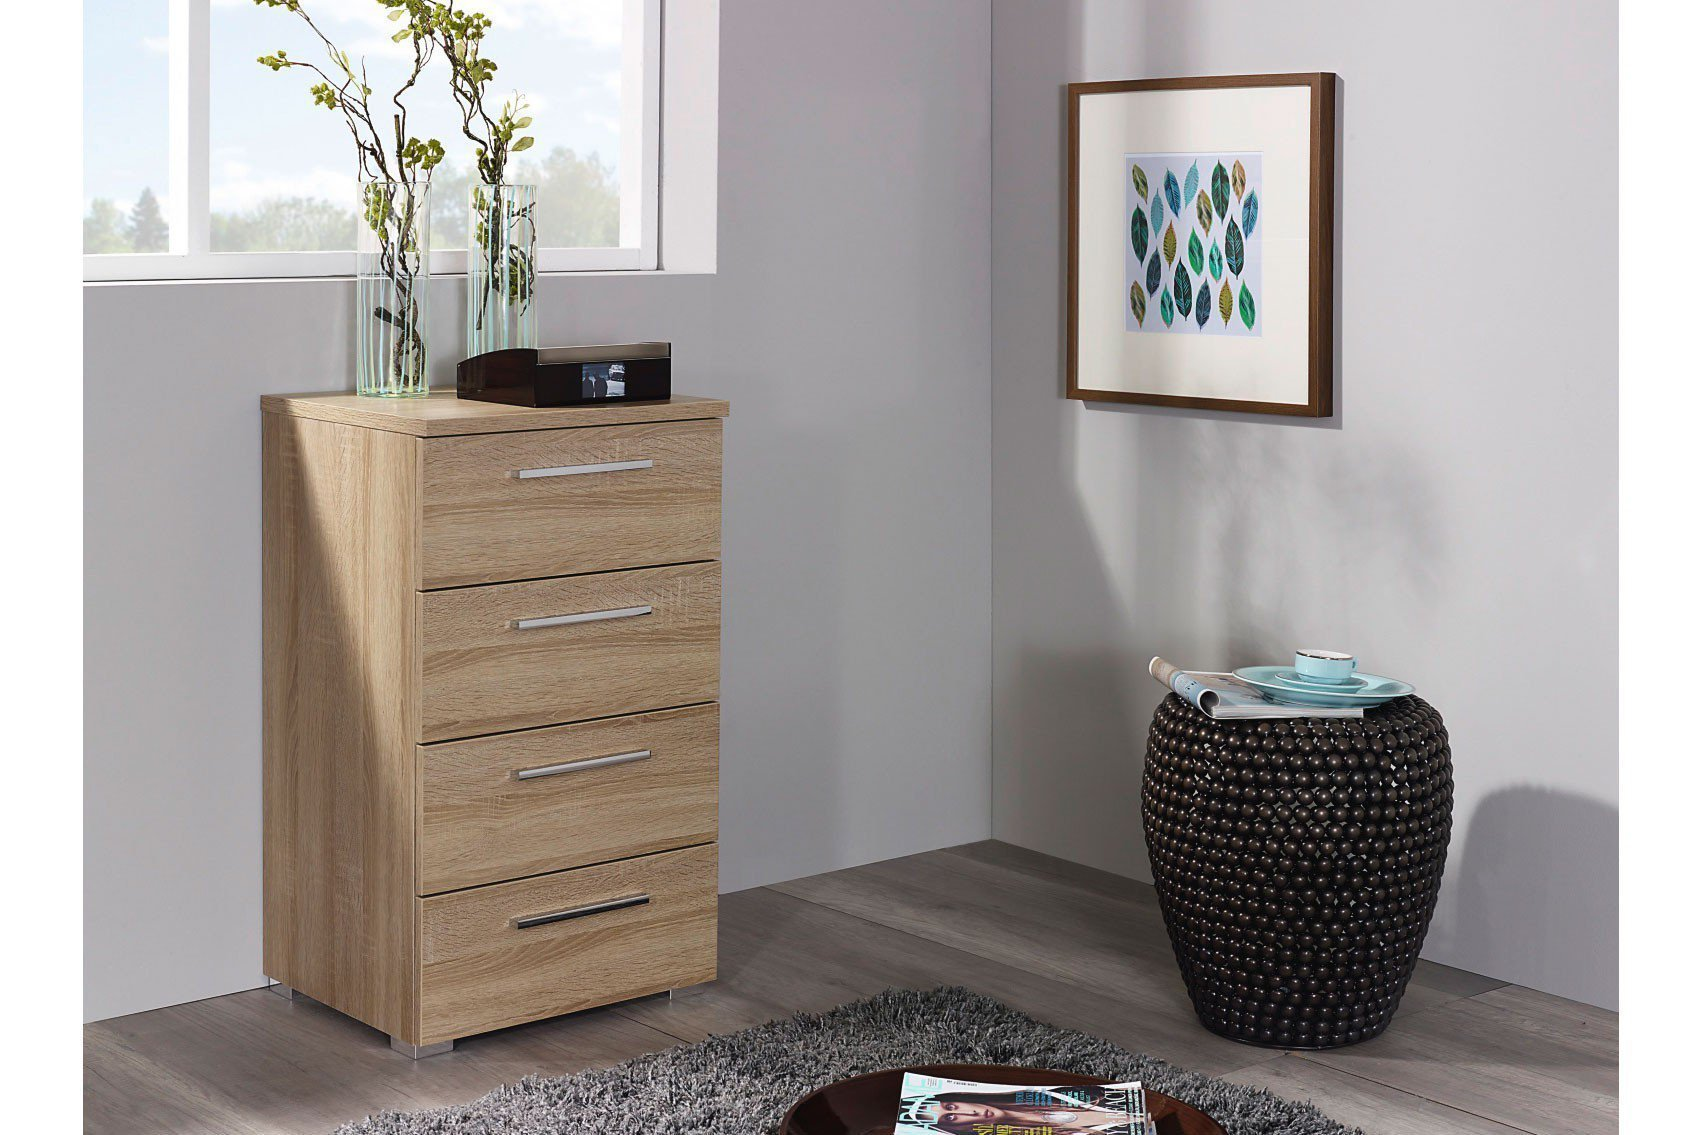 rauch solo kommode schmal eiche nachbildung m bel letz ihr online shop. Black Bedroom Furniture Sets. Home Design Ideas